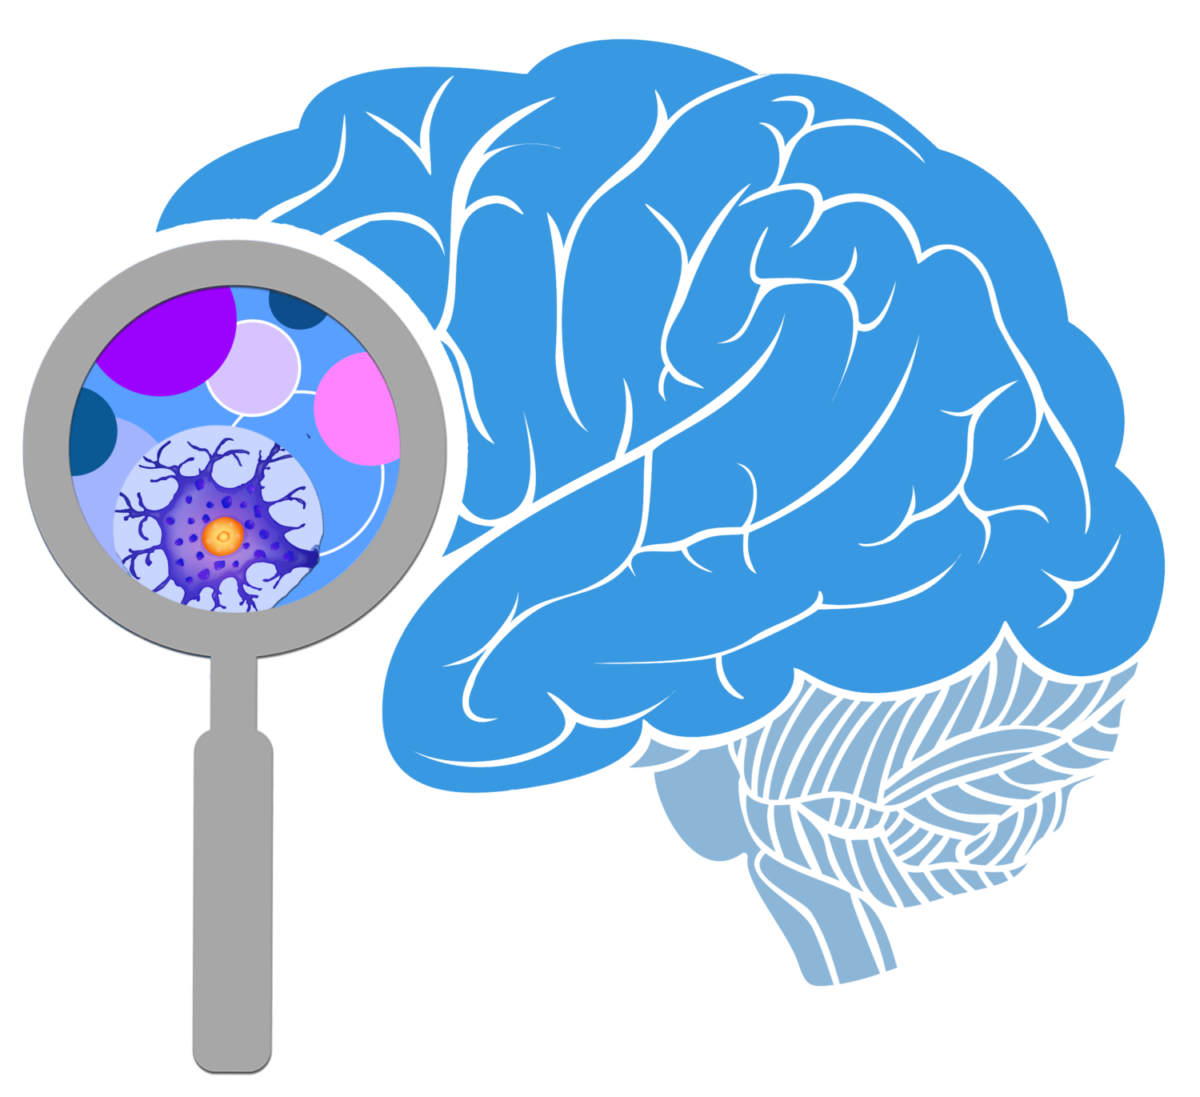 The initiative why study. Kid clipart brain